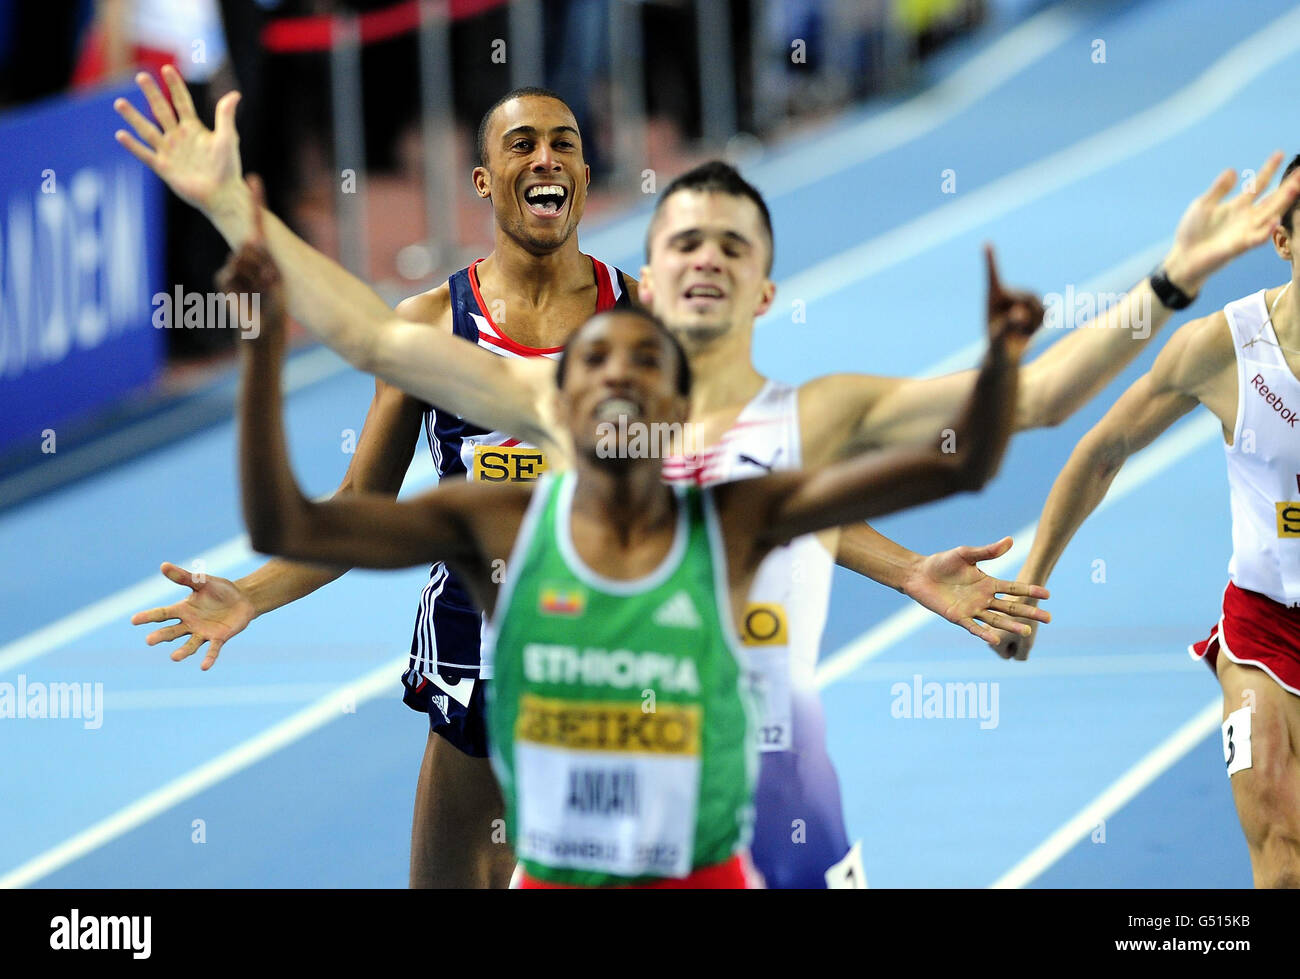 Athletics - IAAF World Indoor Championships - Day Three - Atakoy Athletics Arena - Stock Image